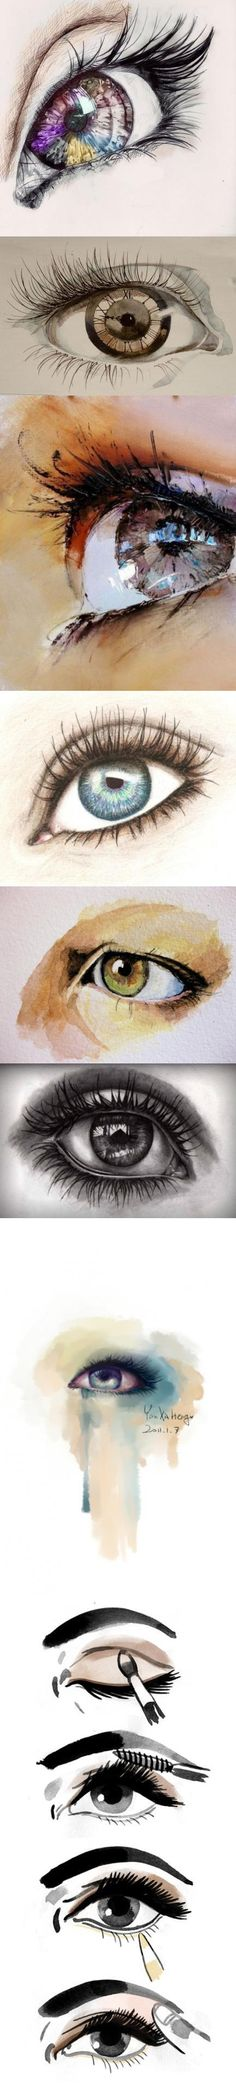 eye art for the new office. Art Tutorials, Drawing Tutorials, Arte Sketchbook, Eye Art, Drawing Techniques, Art Tips, Painting & Drawing, Drawing Eyes, Eyeball Drawing